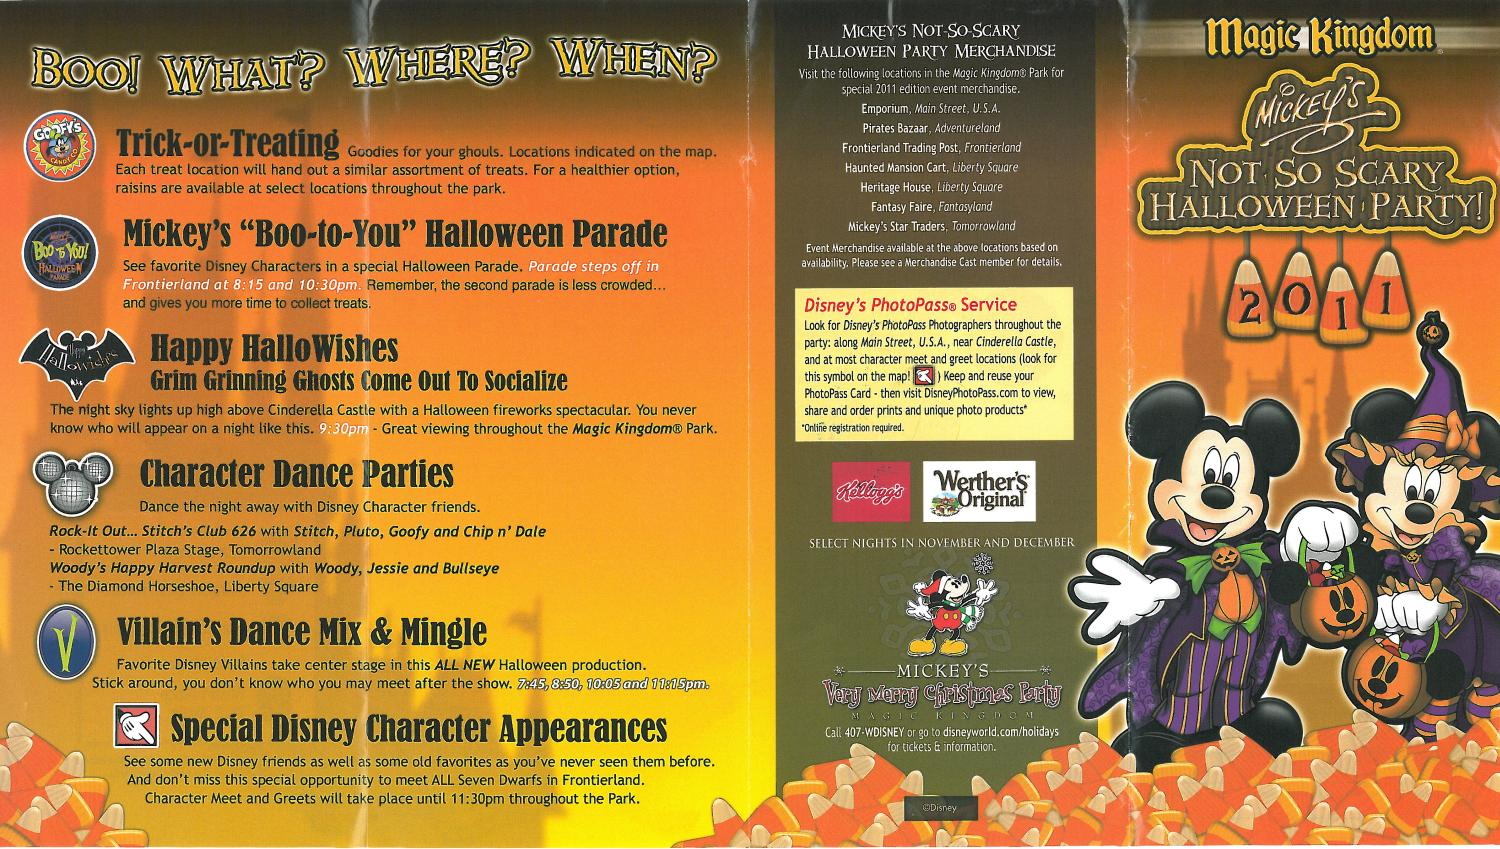 Mickey's Not So Scary Halloween Party 2011 (All Ears® Guest Blog)